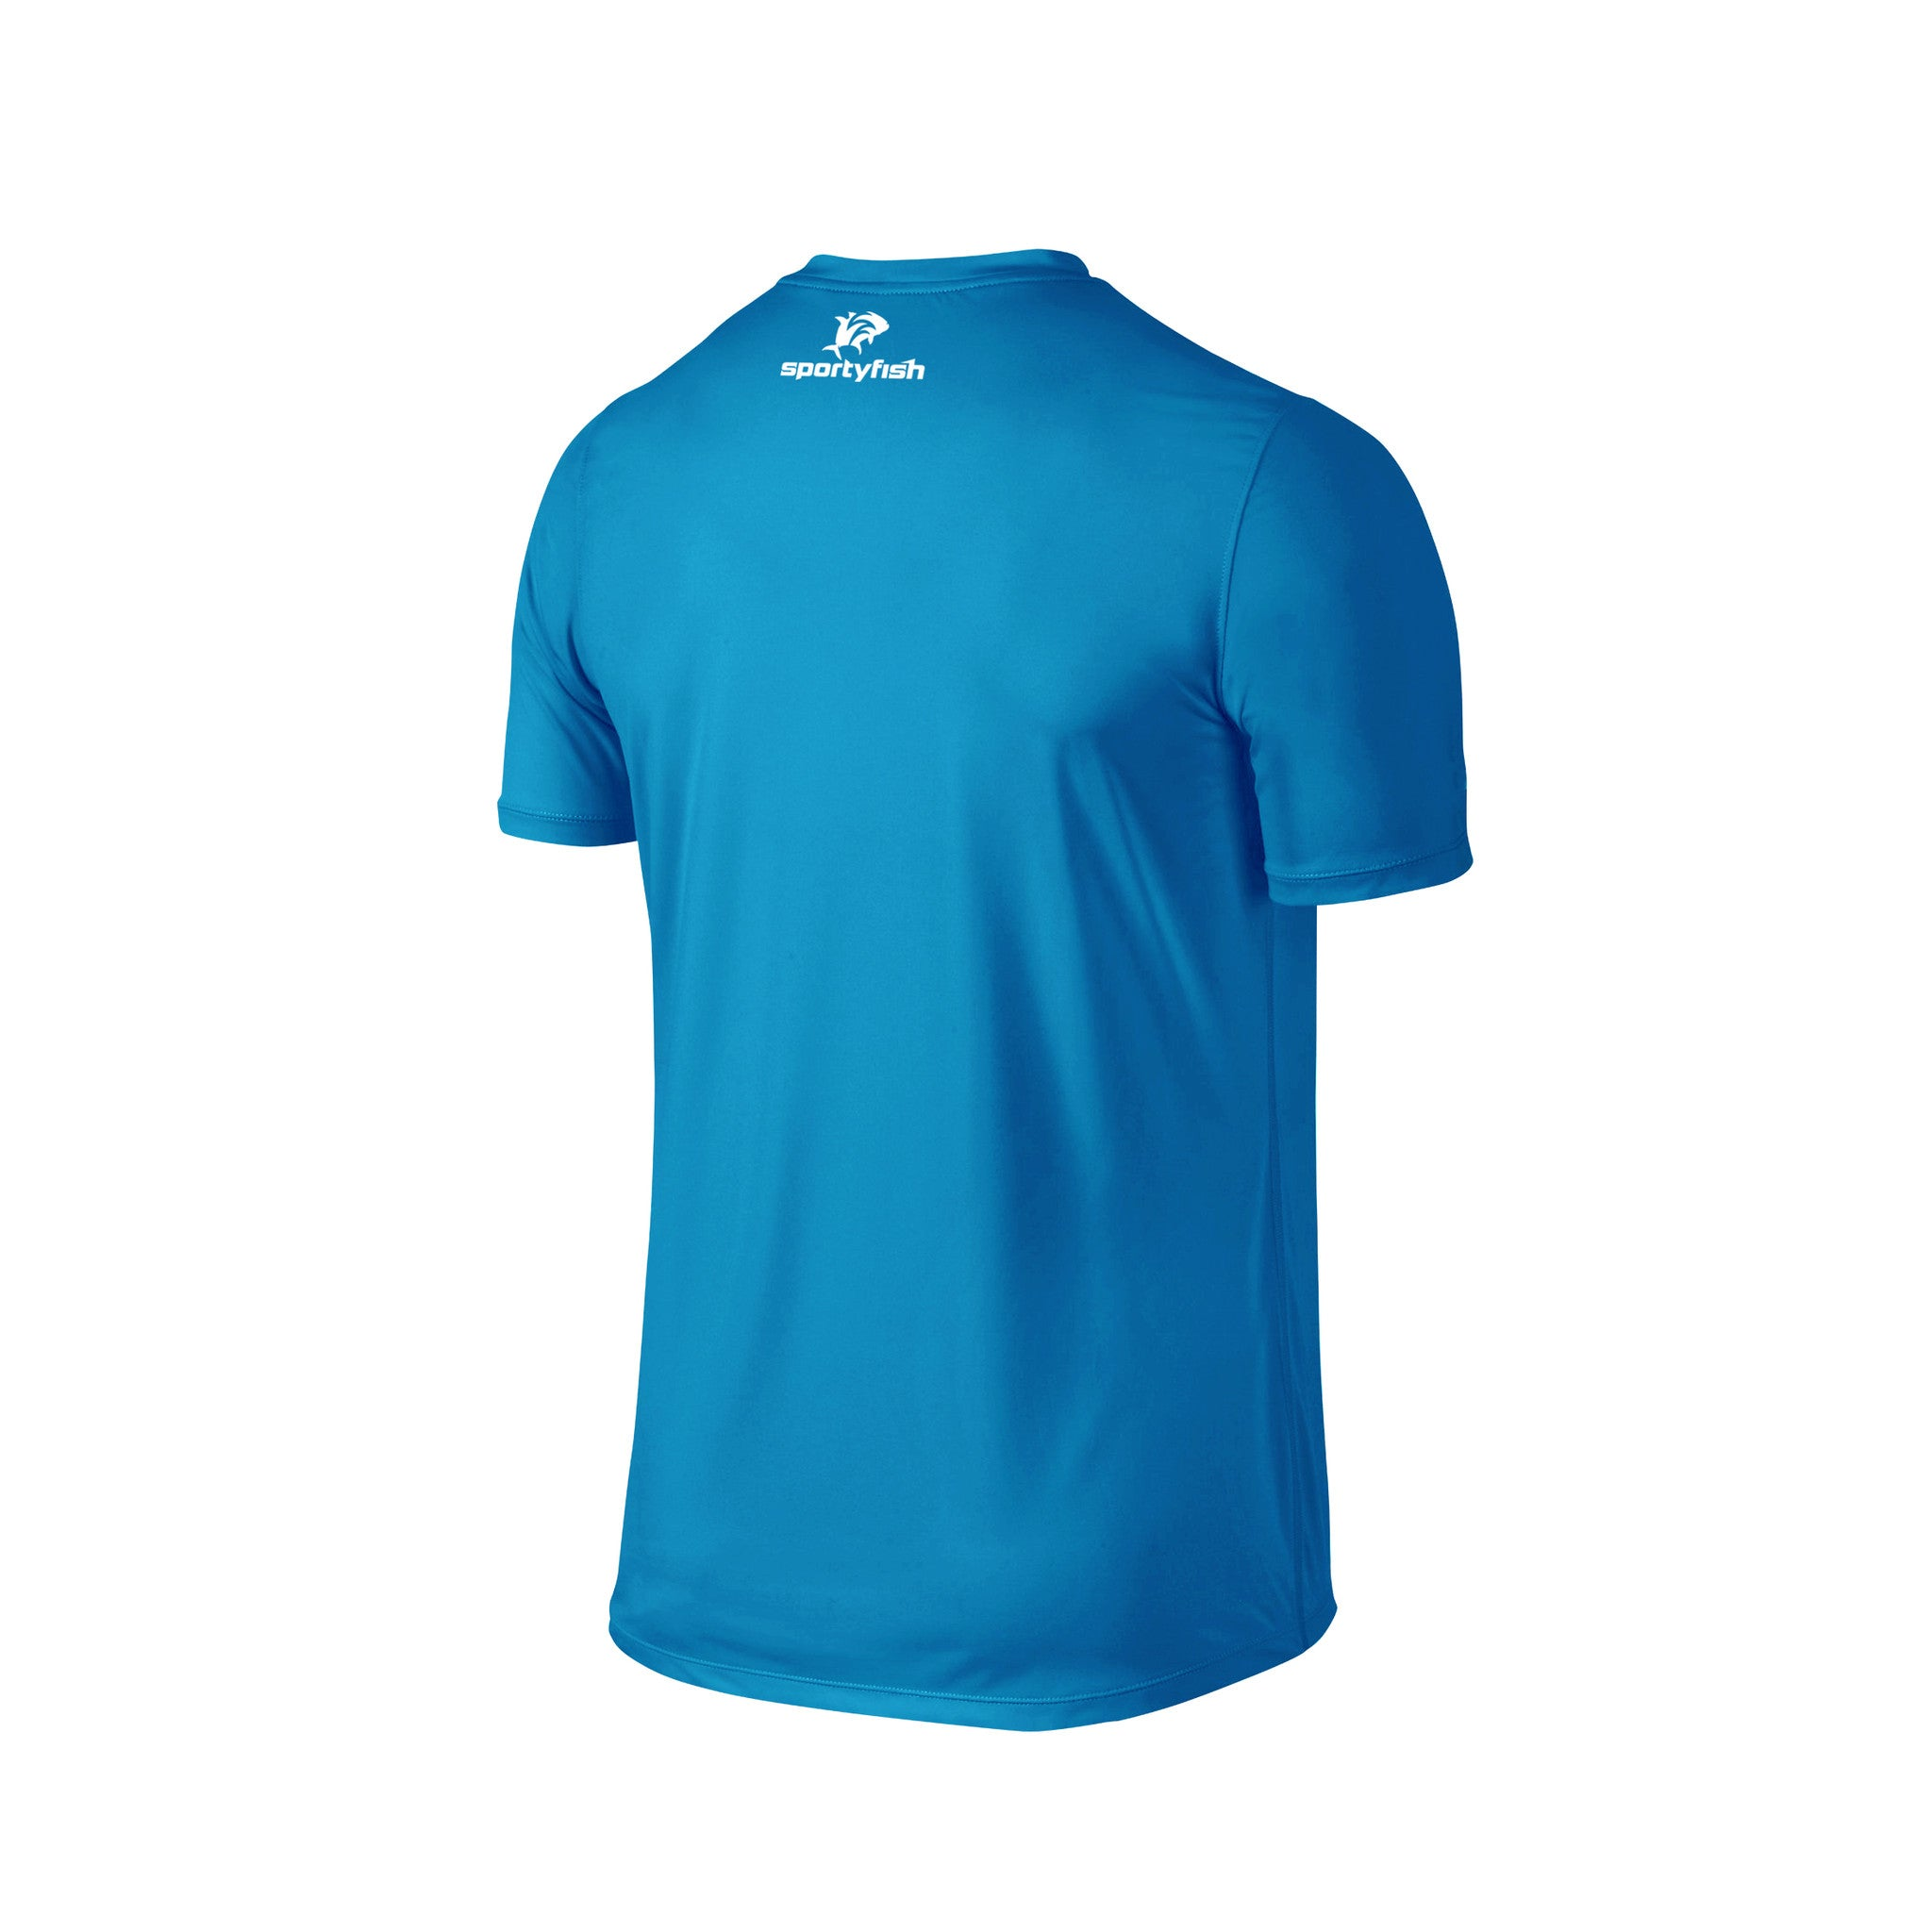 SportyFish Fury Series Turquoise T-shirt: Atlantic Sailfish back view